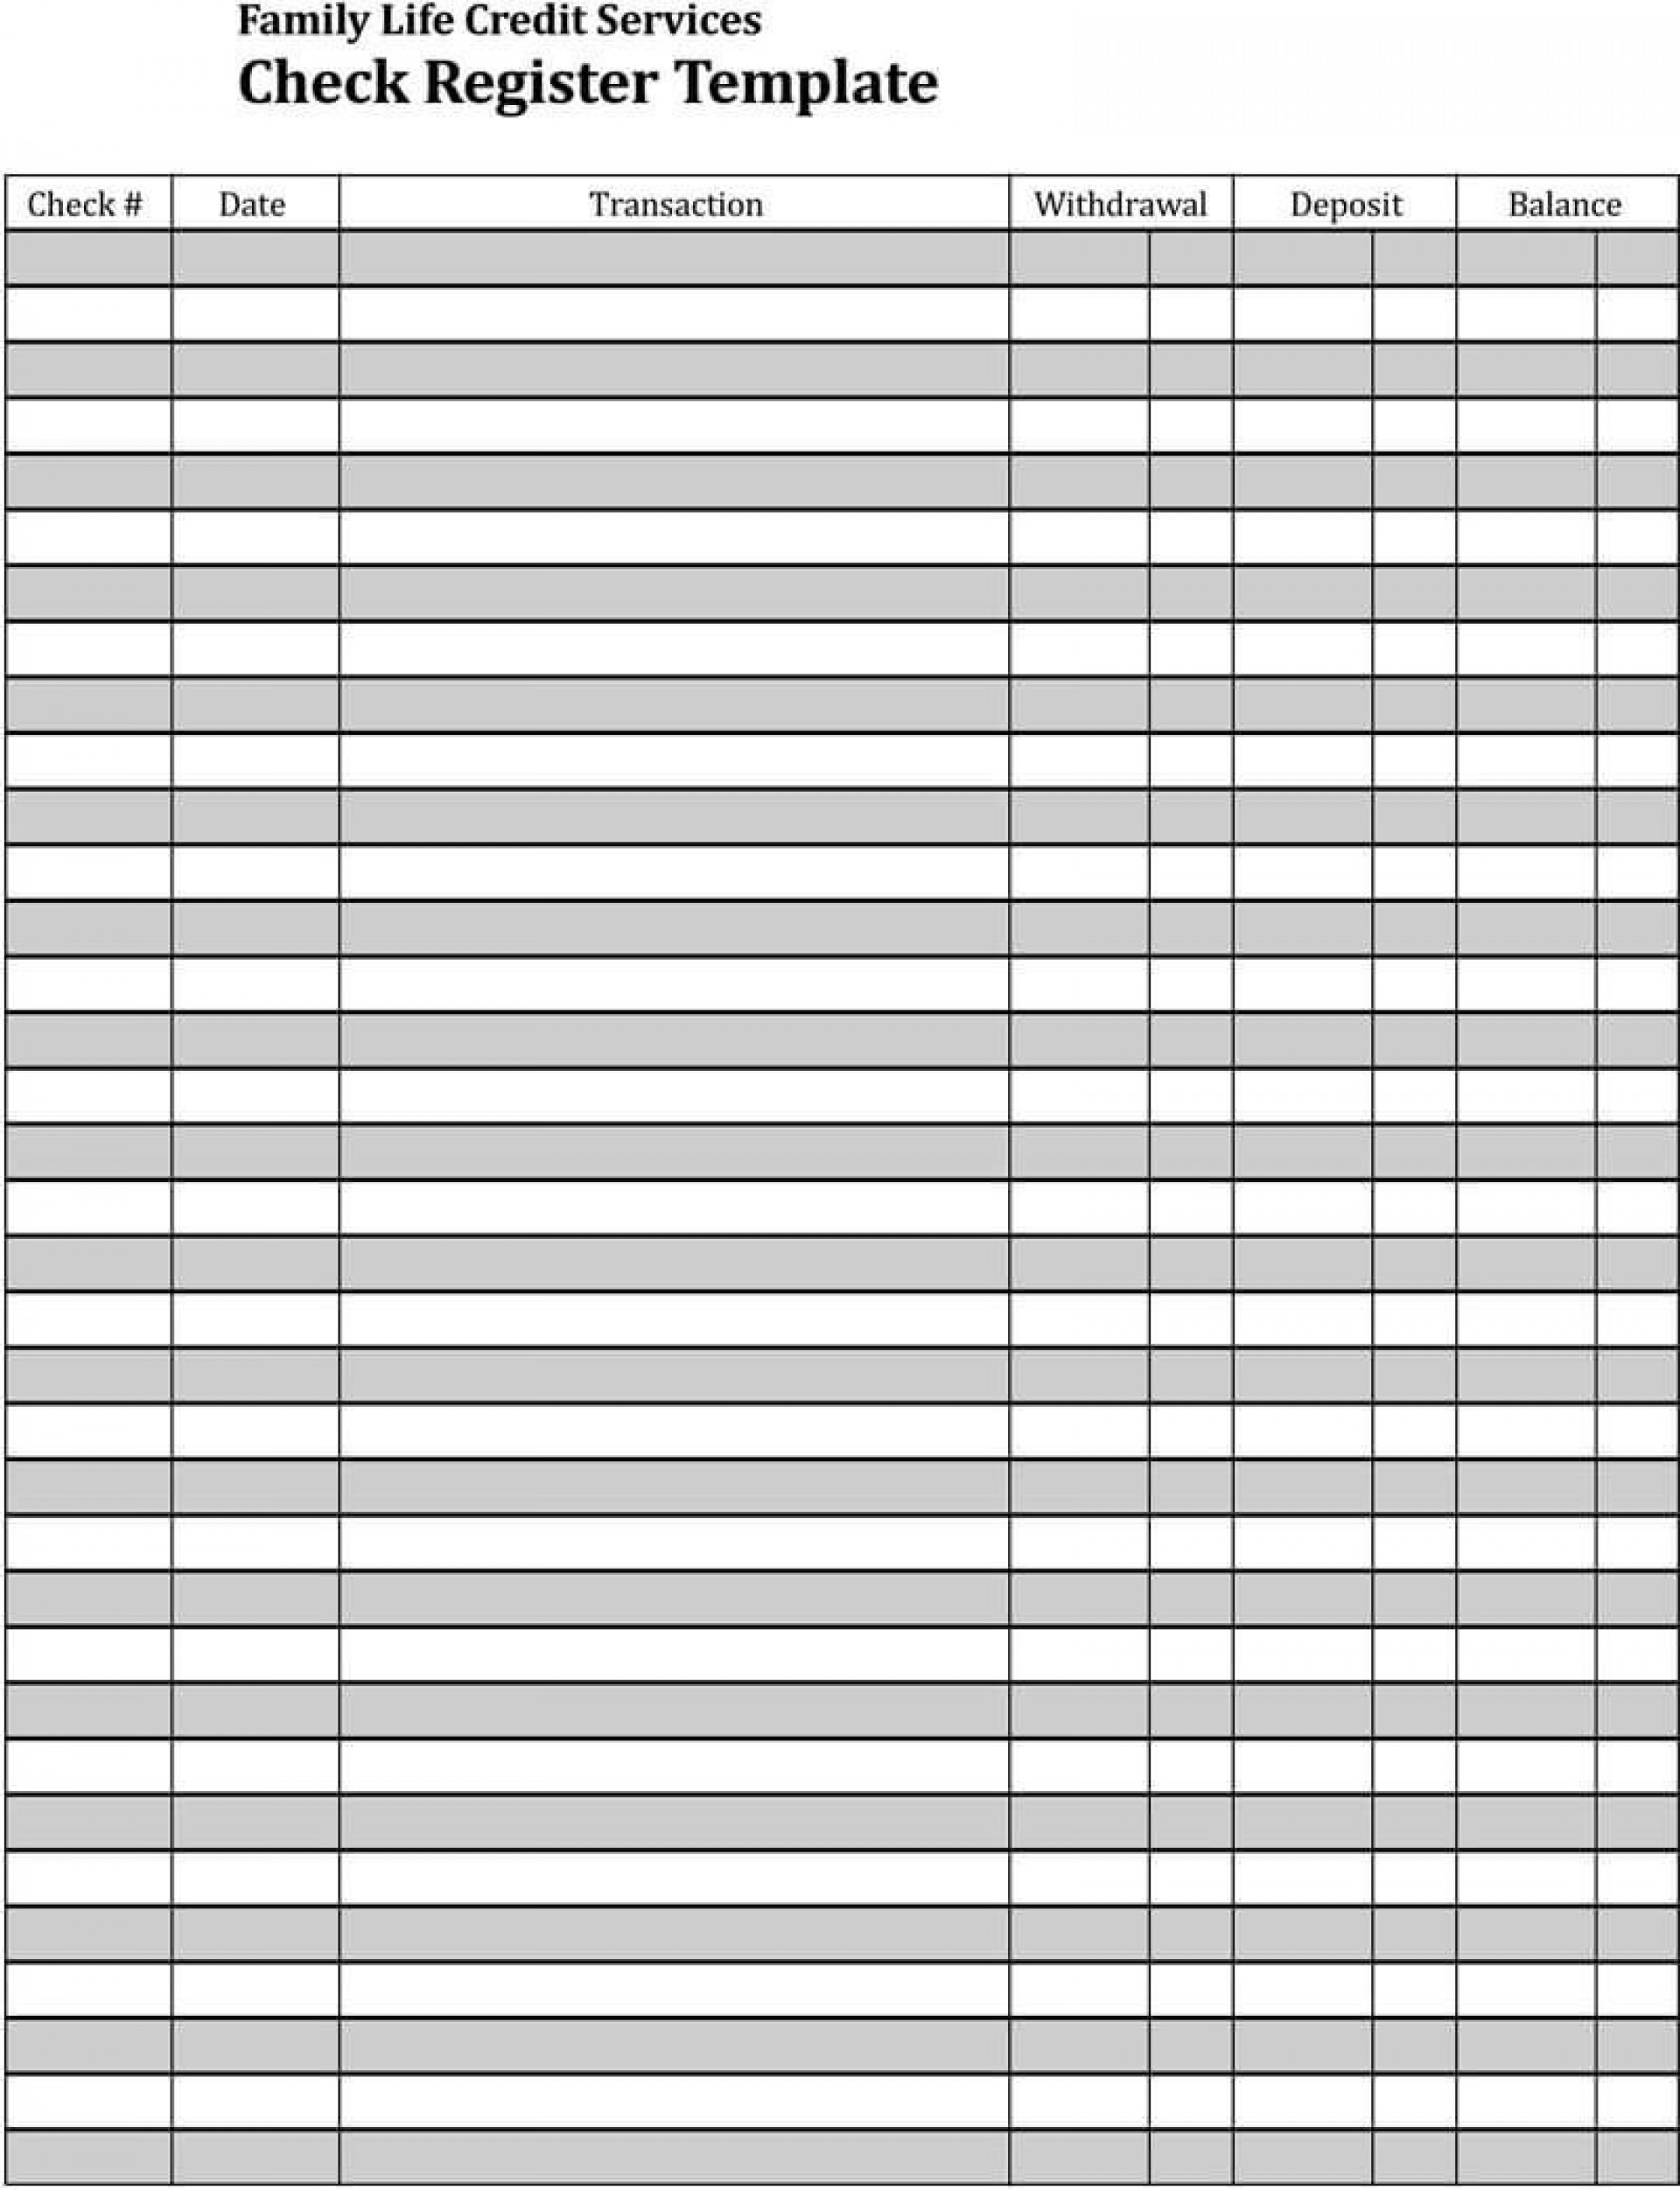 009 Awful Checkbook Register Template Excel Design  Check 2007 Balance 20031920